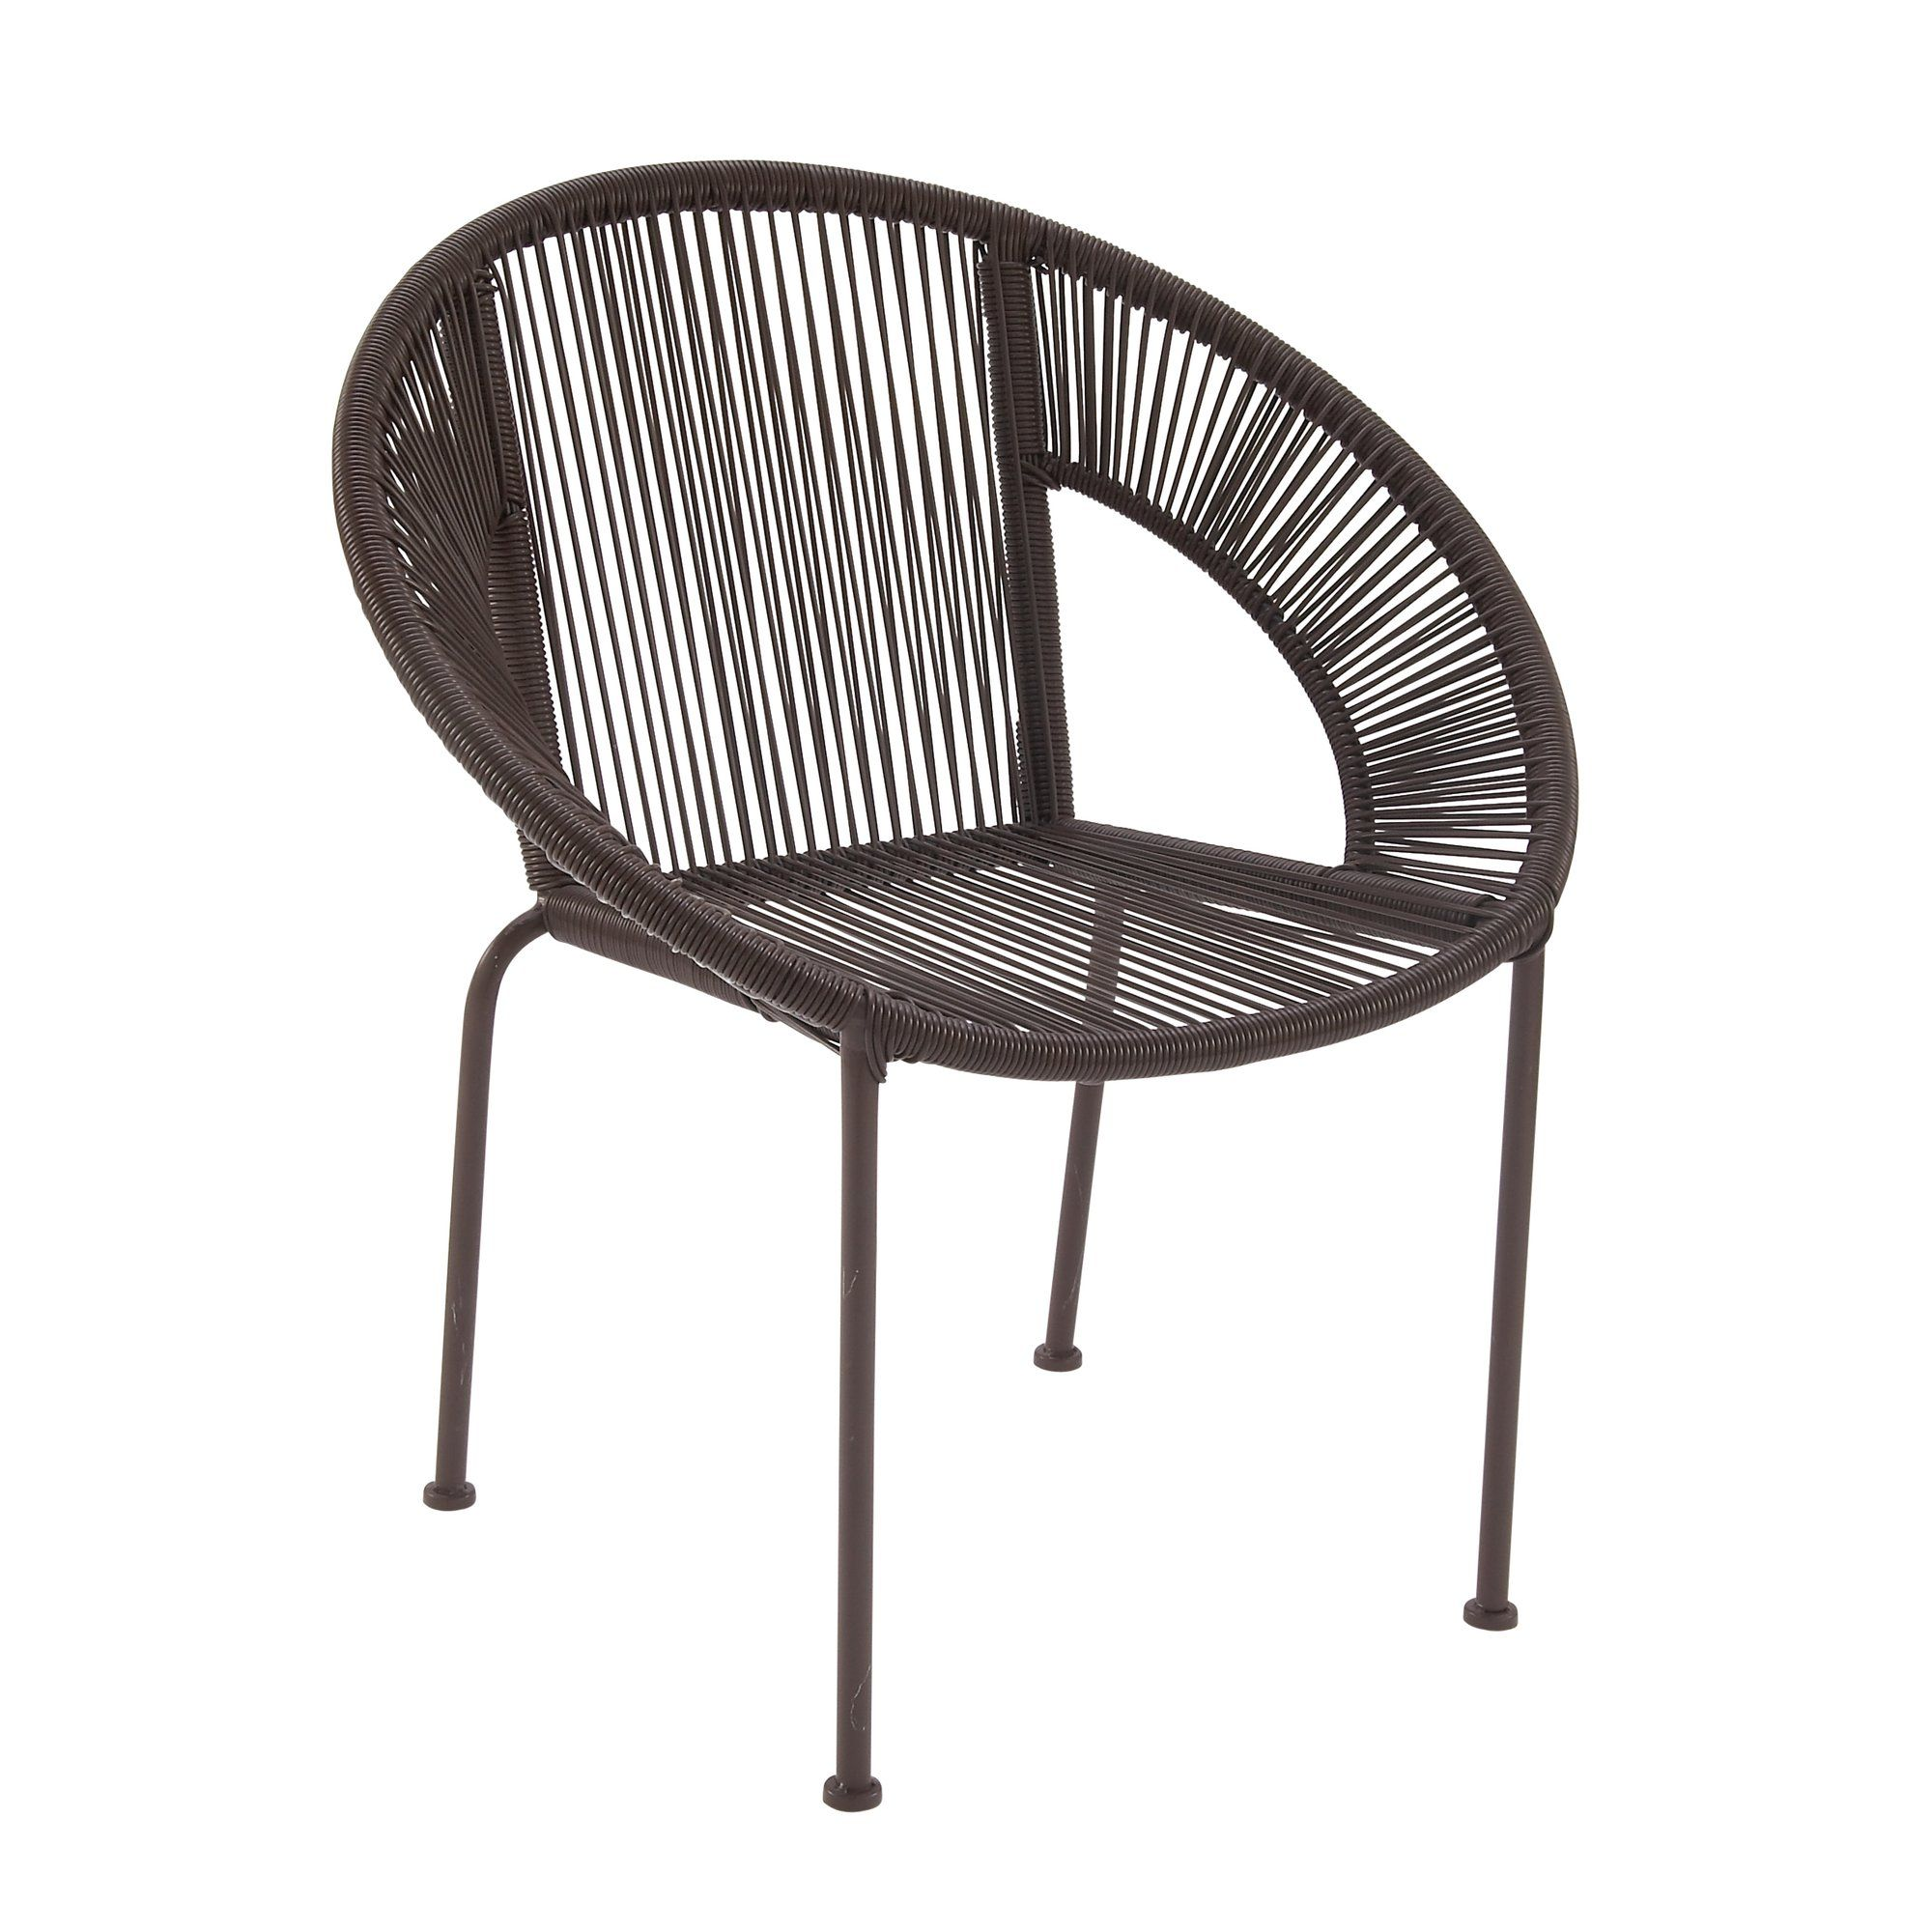 Main Image Zoomed | Chairs | Pinterest